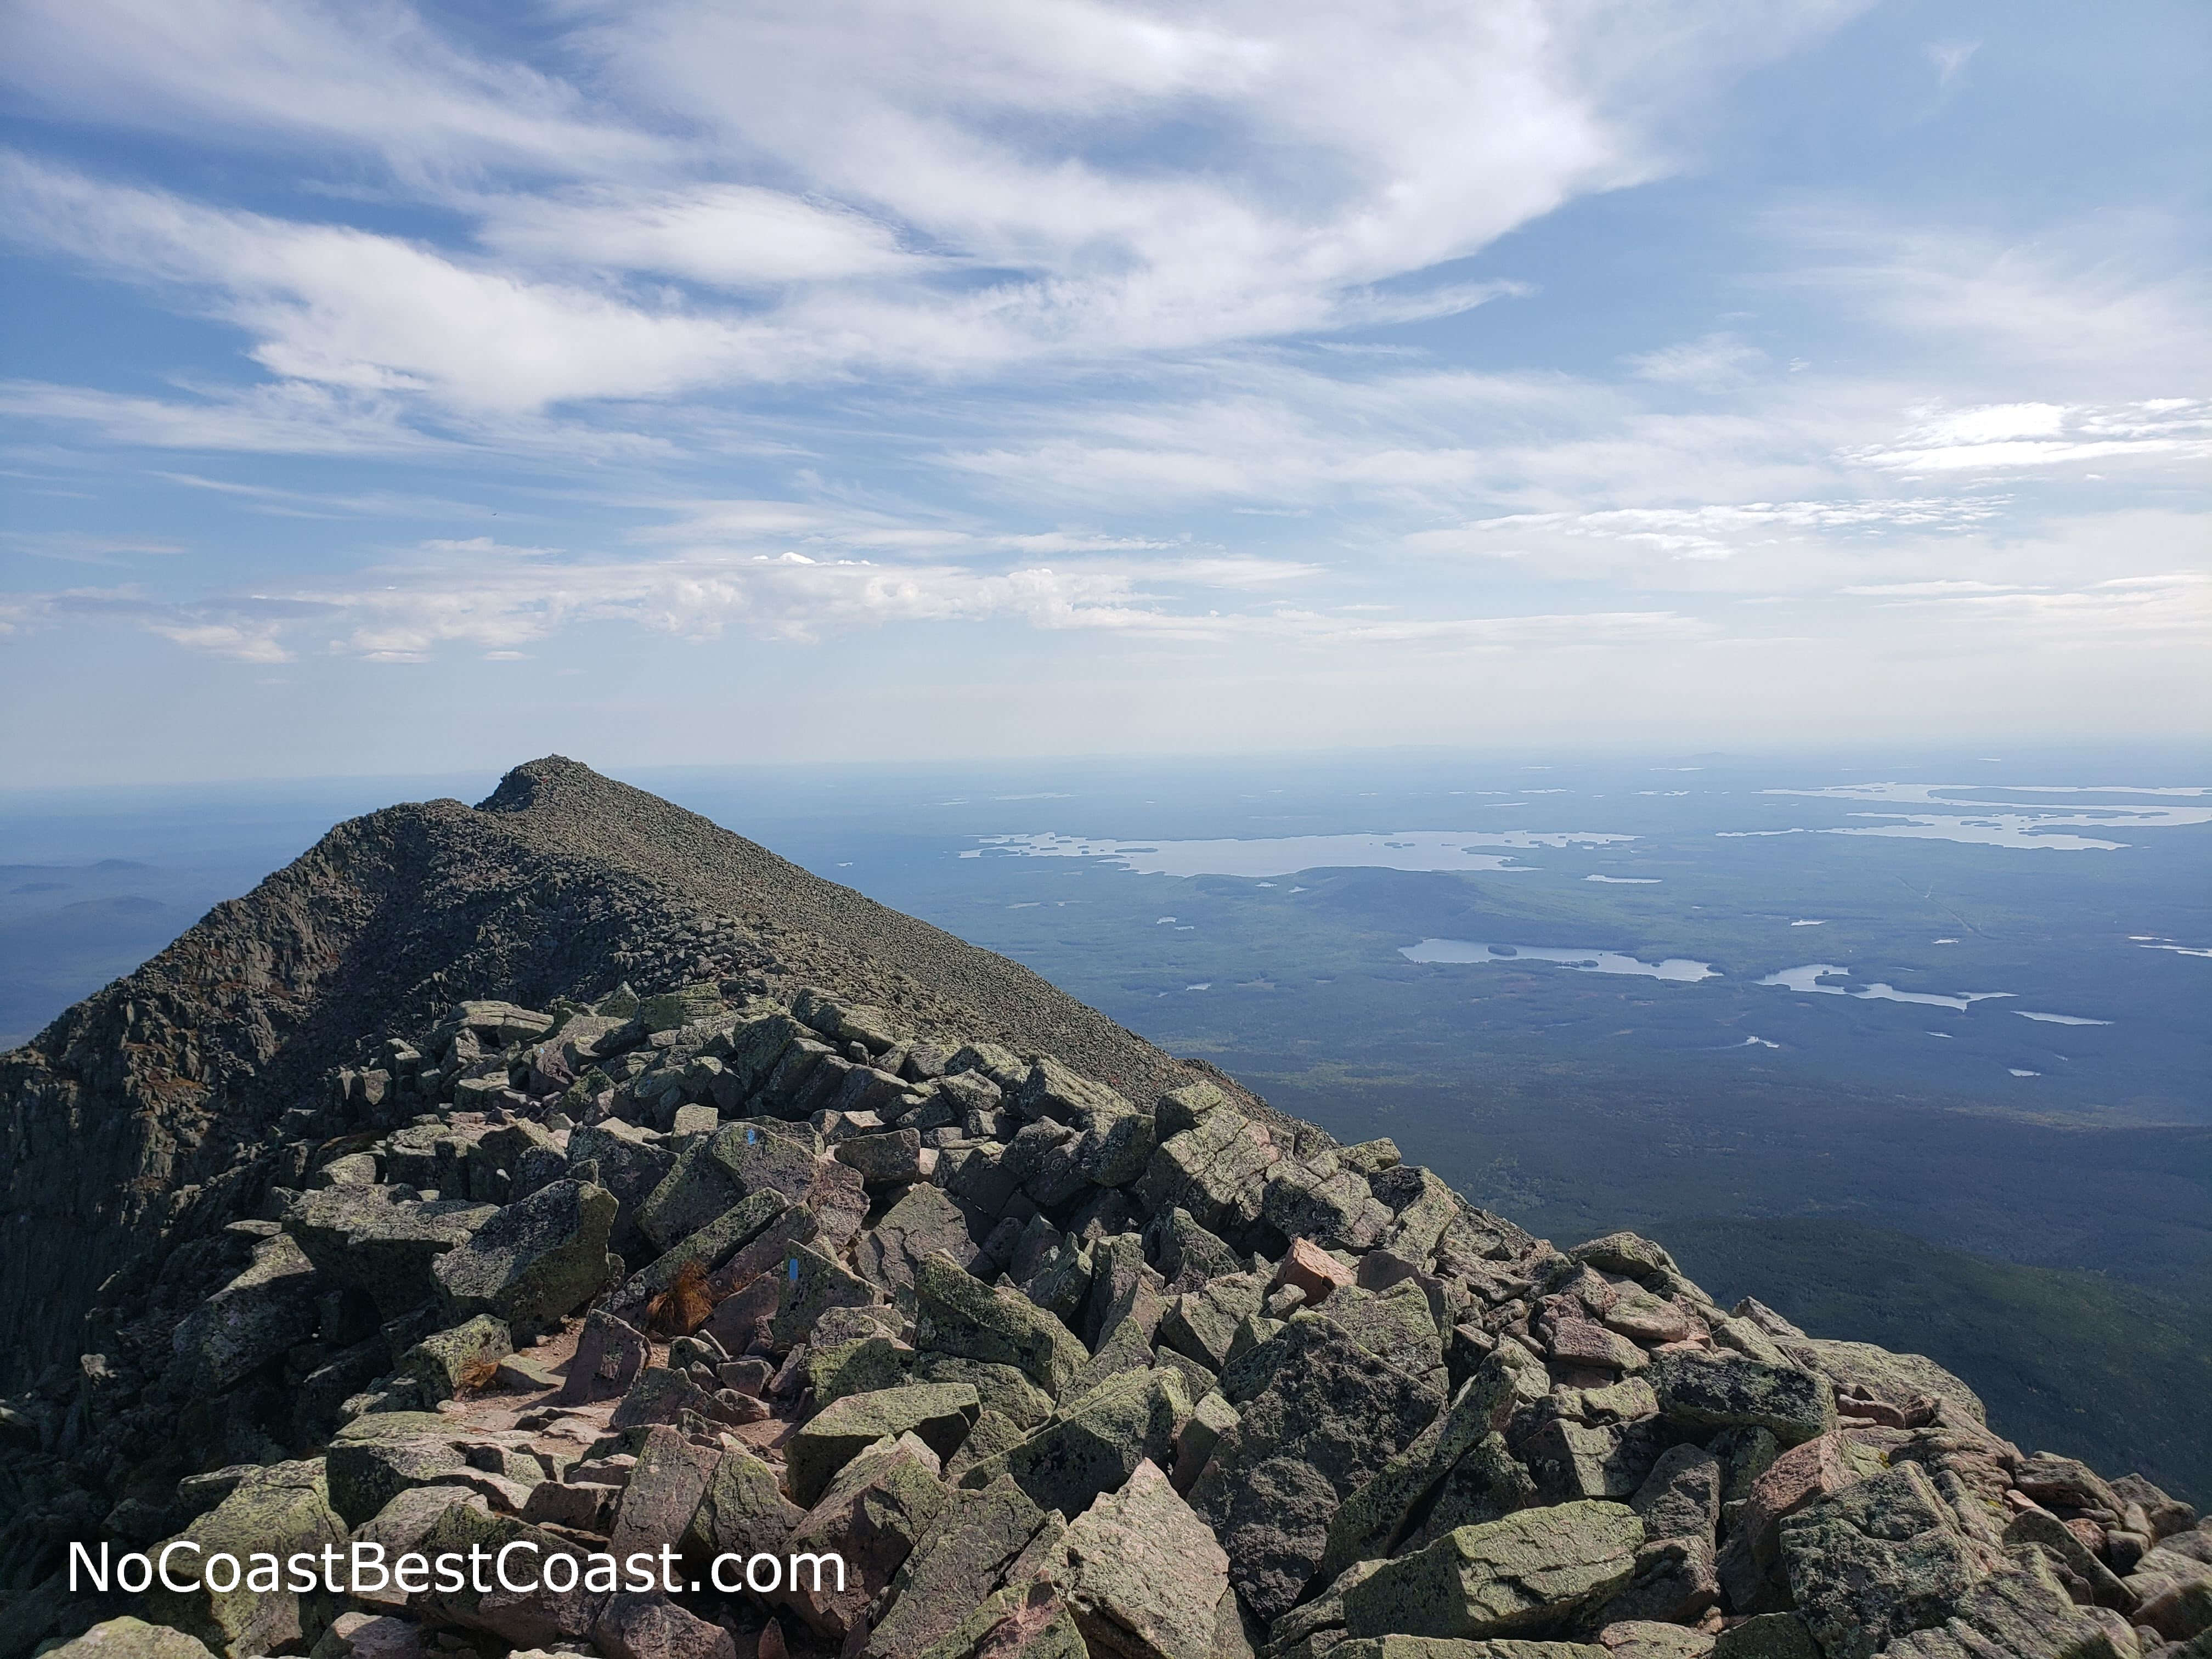 The view from the top of Mt. Katahdin